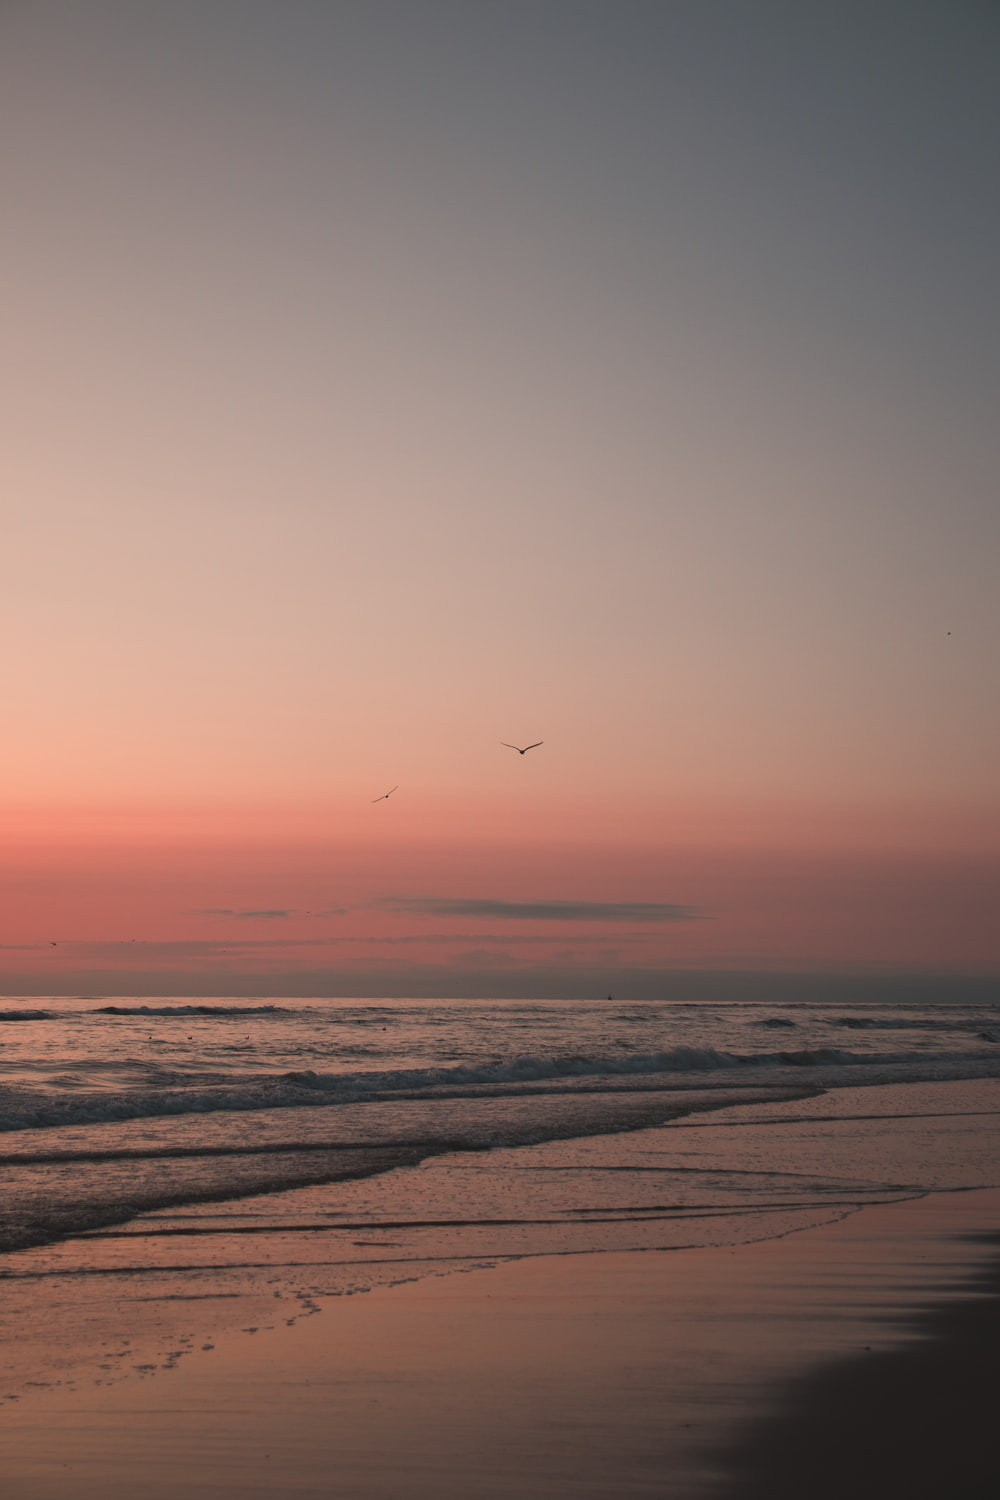 bird flying over the sea during sunset